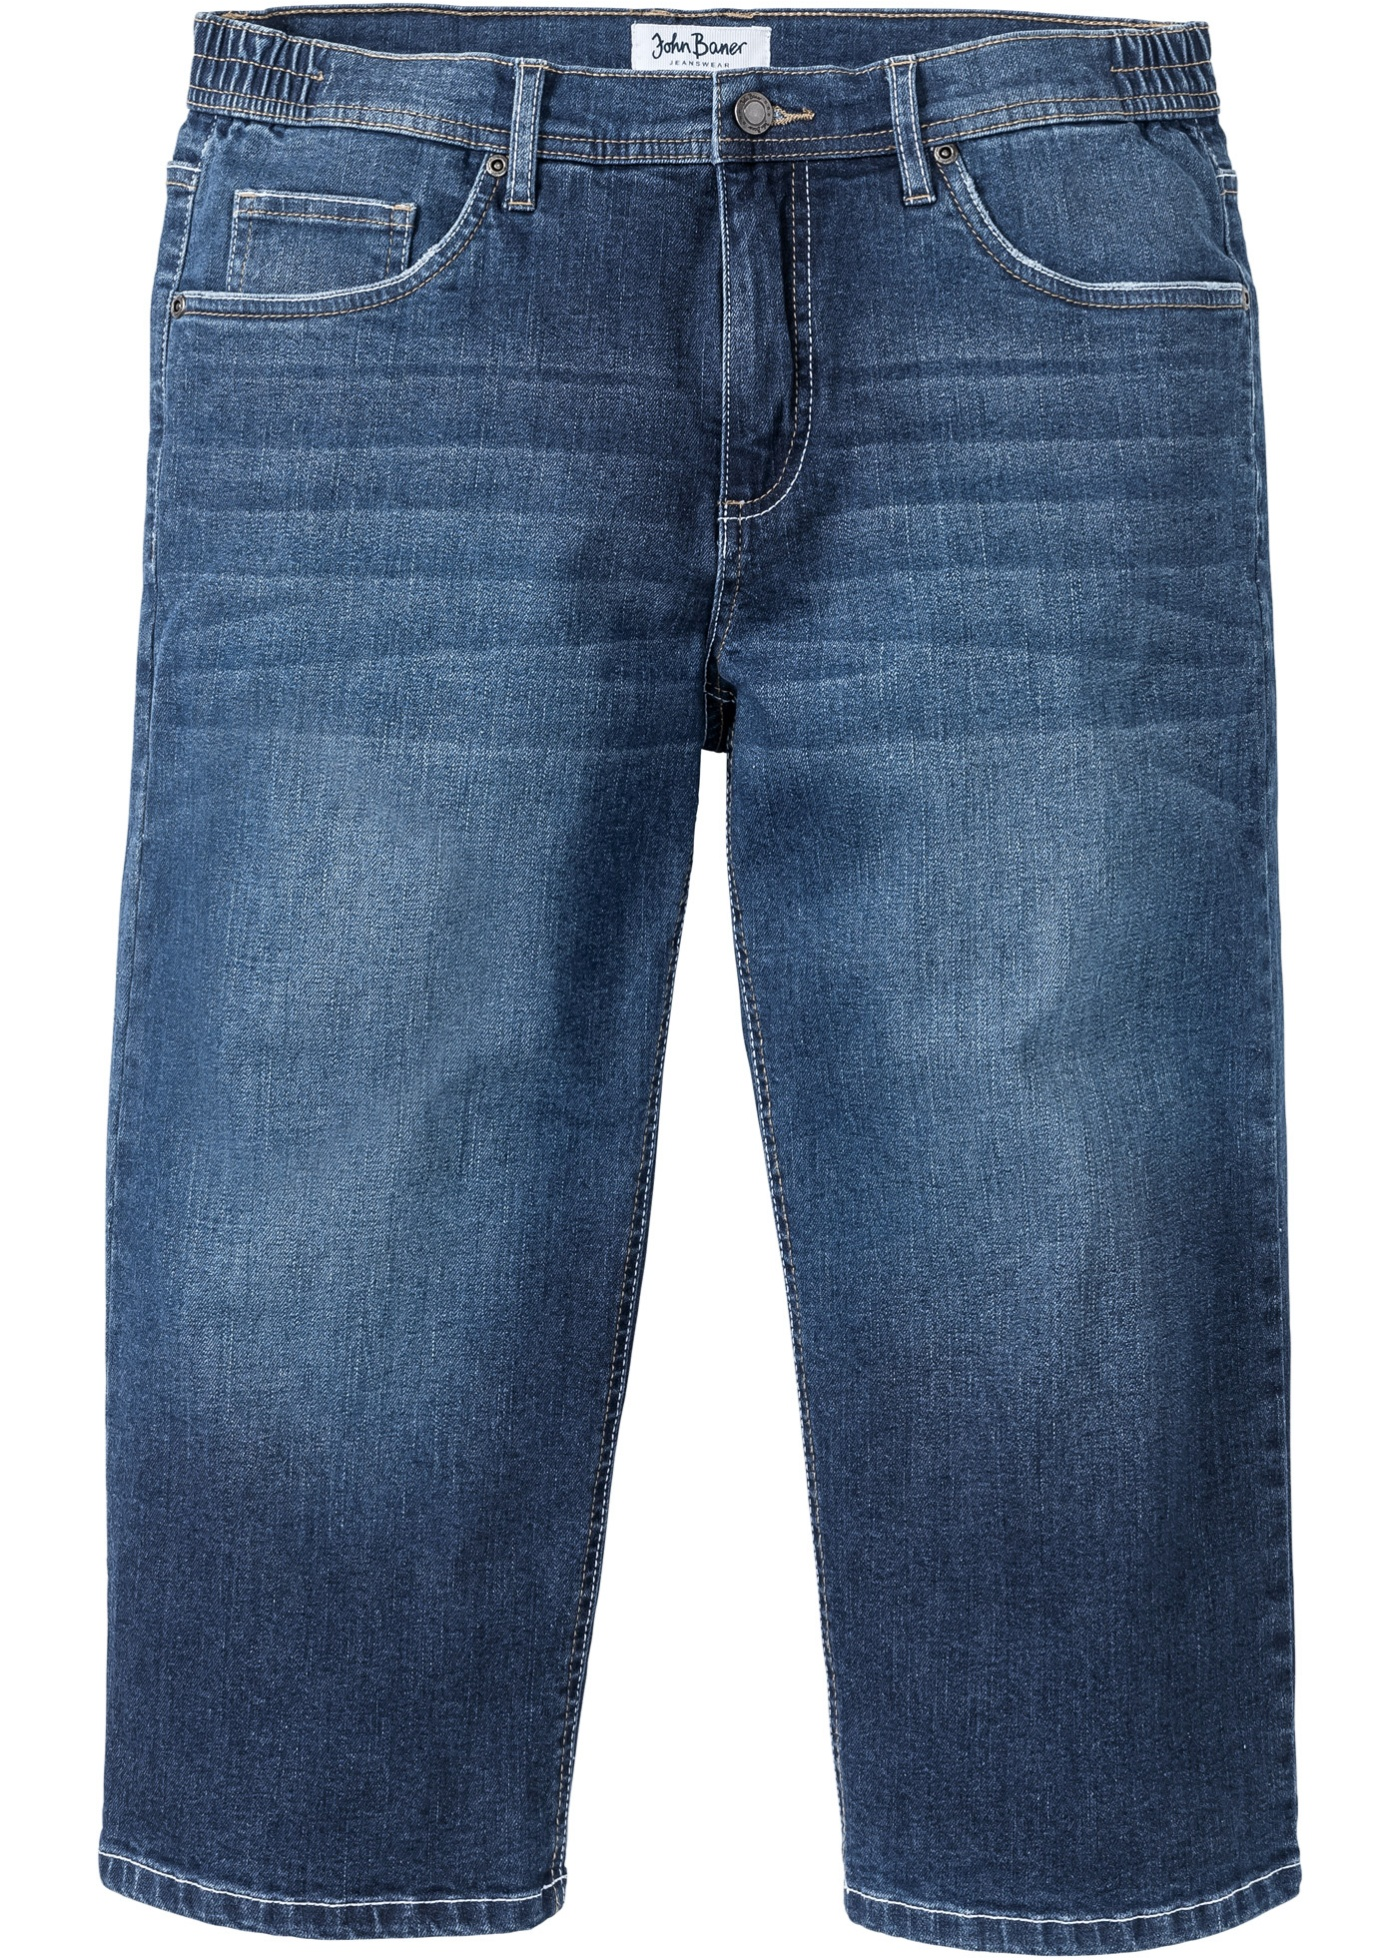 3/4 Regular Fit Komfort-Stretchjeans in blau für Herren von bonprix